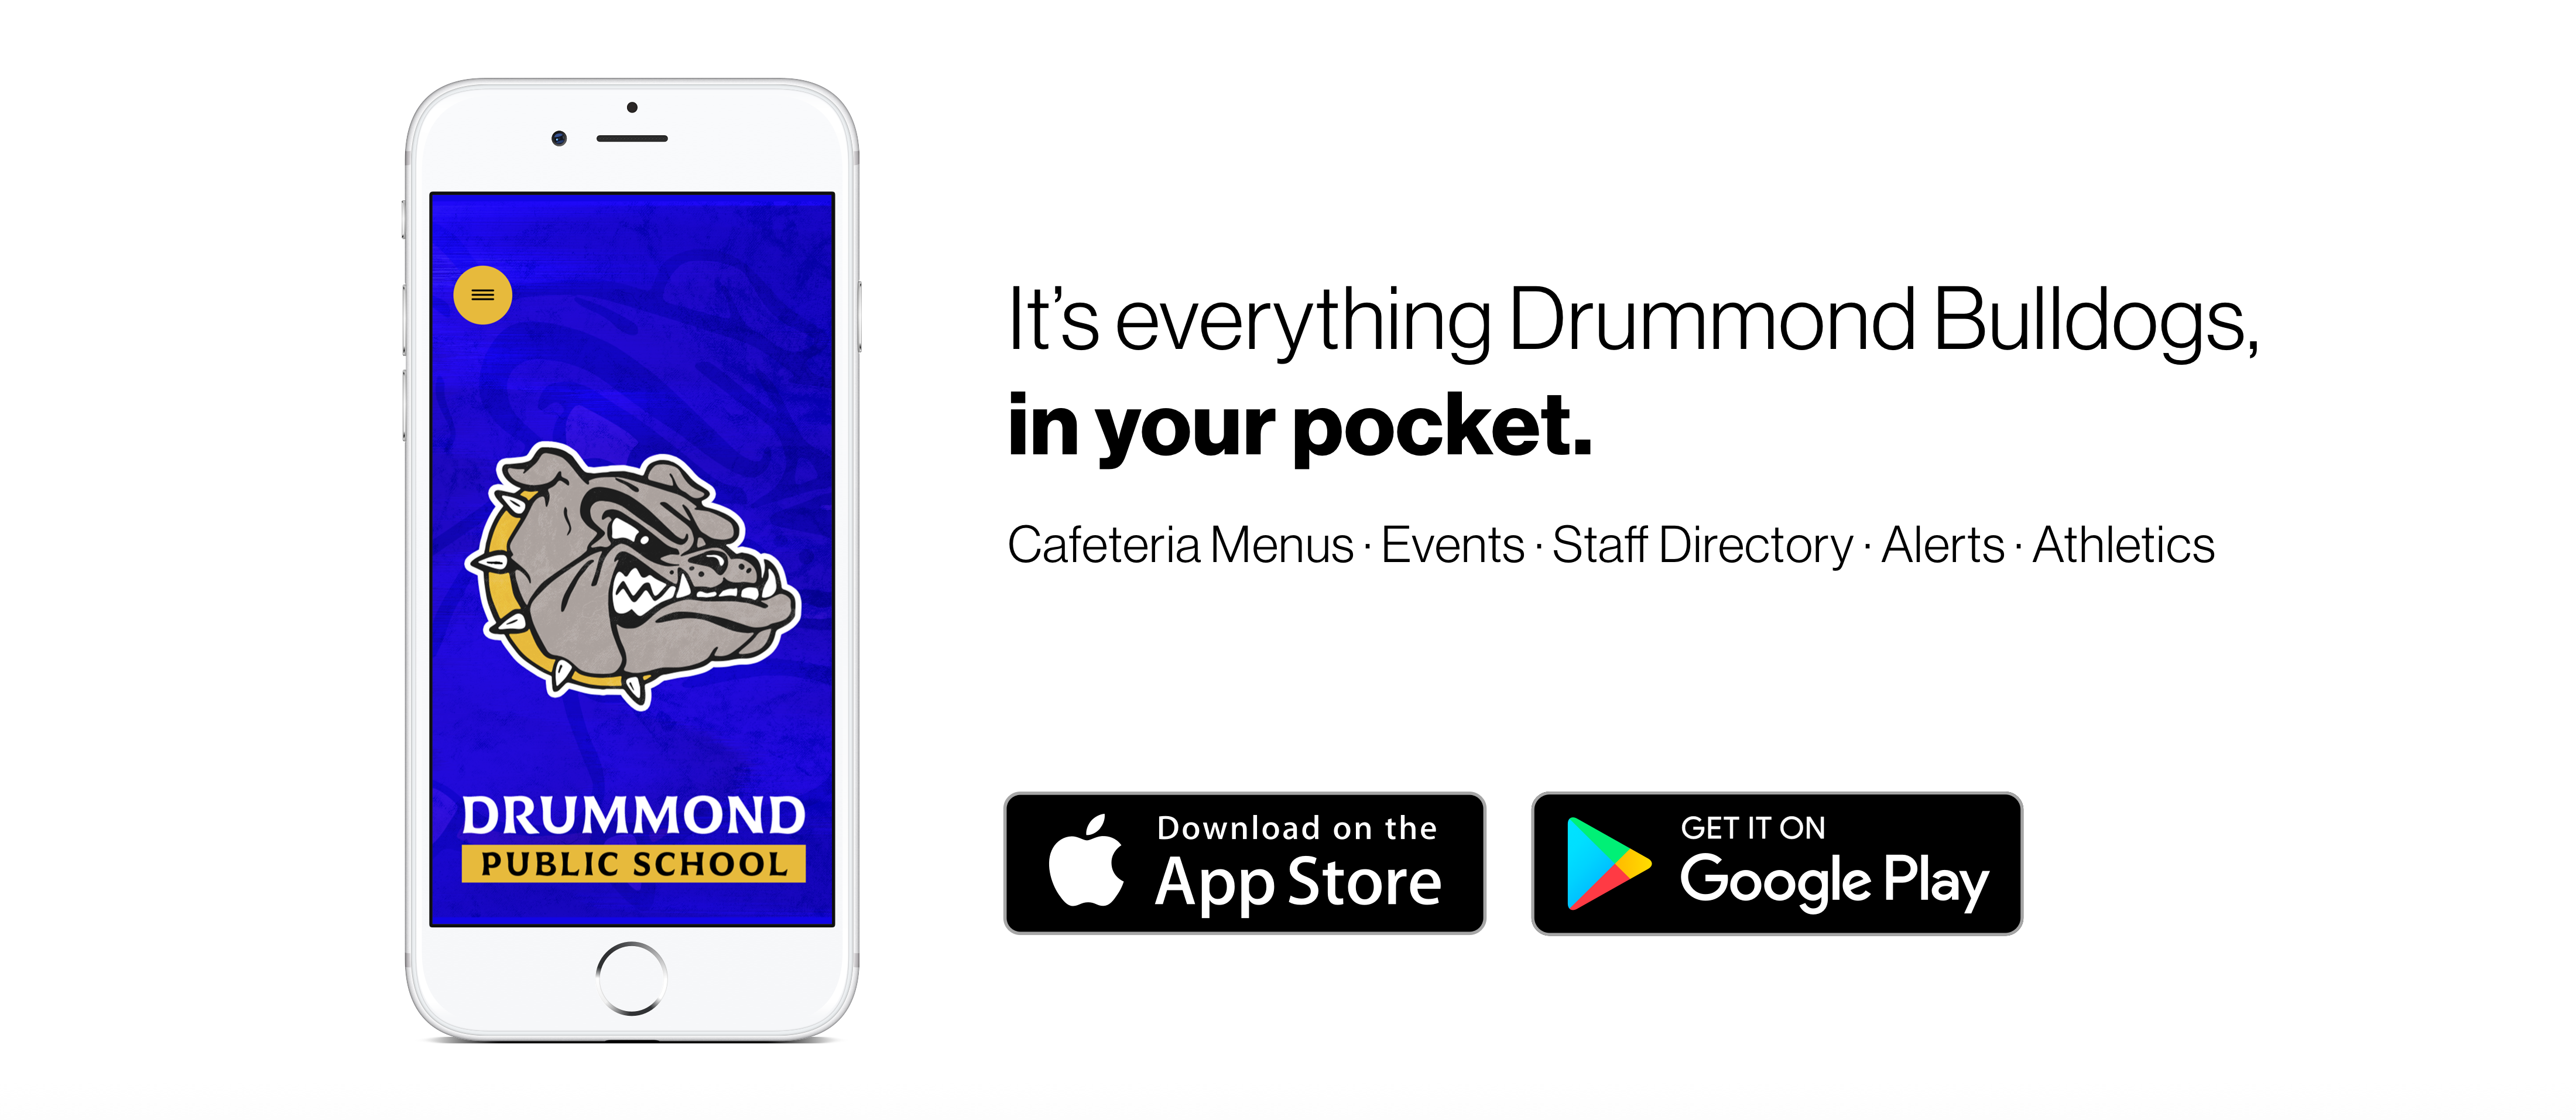 It's everything Drummond Bulldogs in your pocket